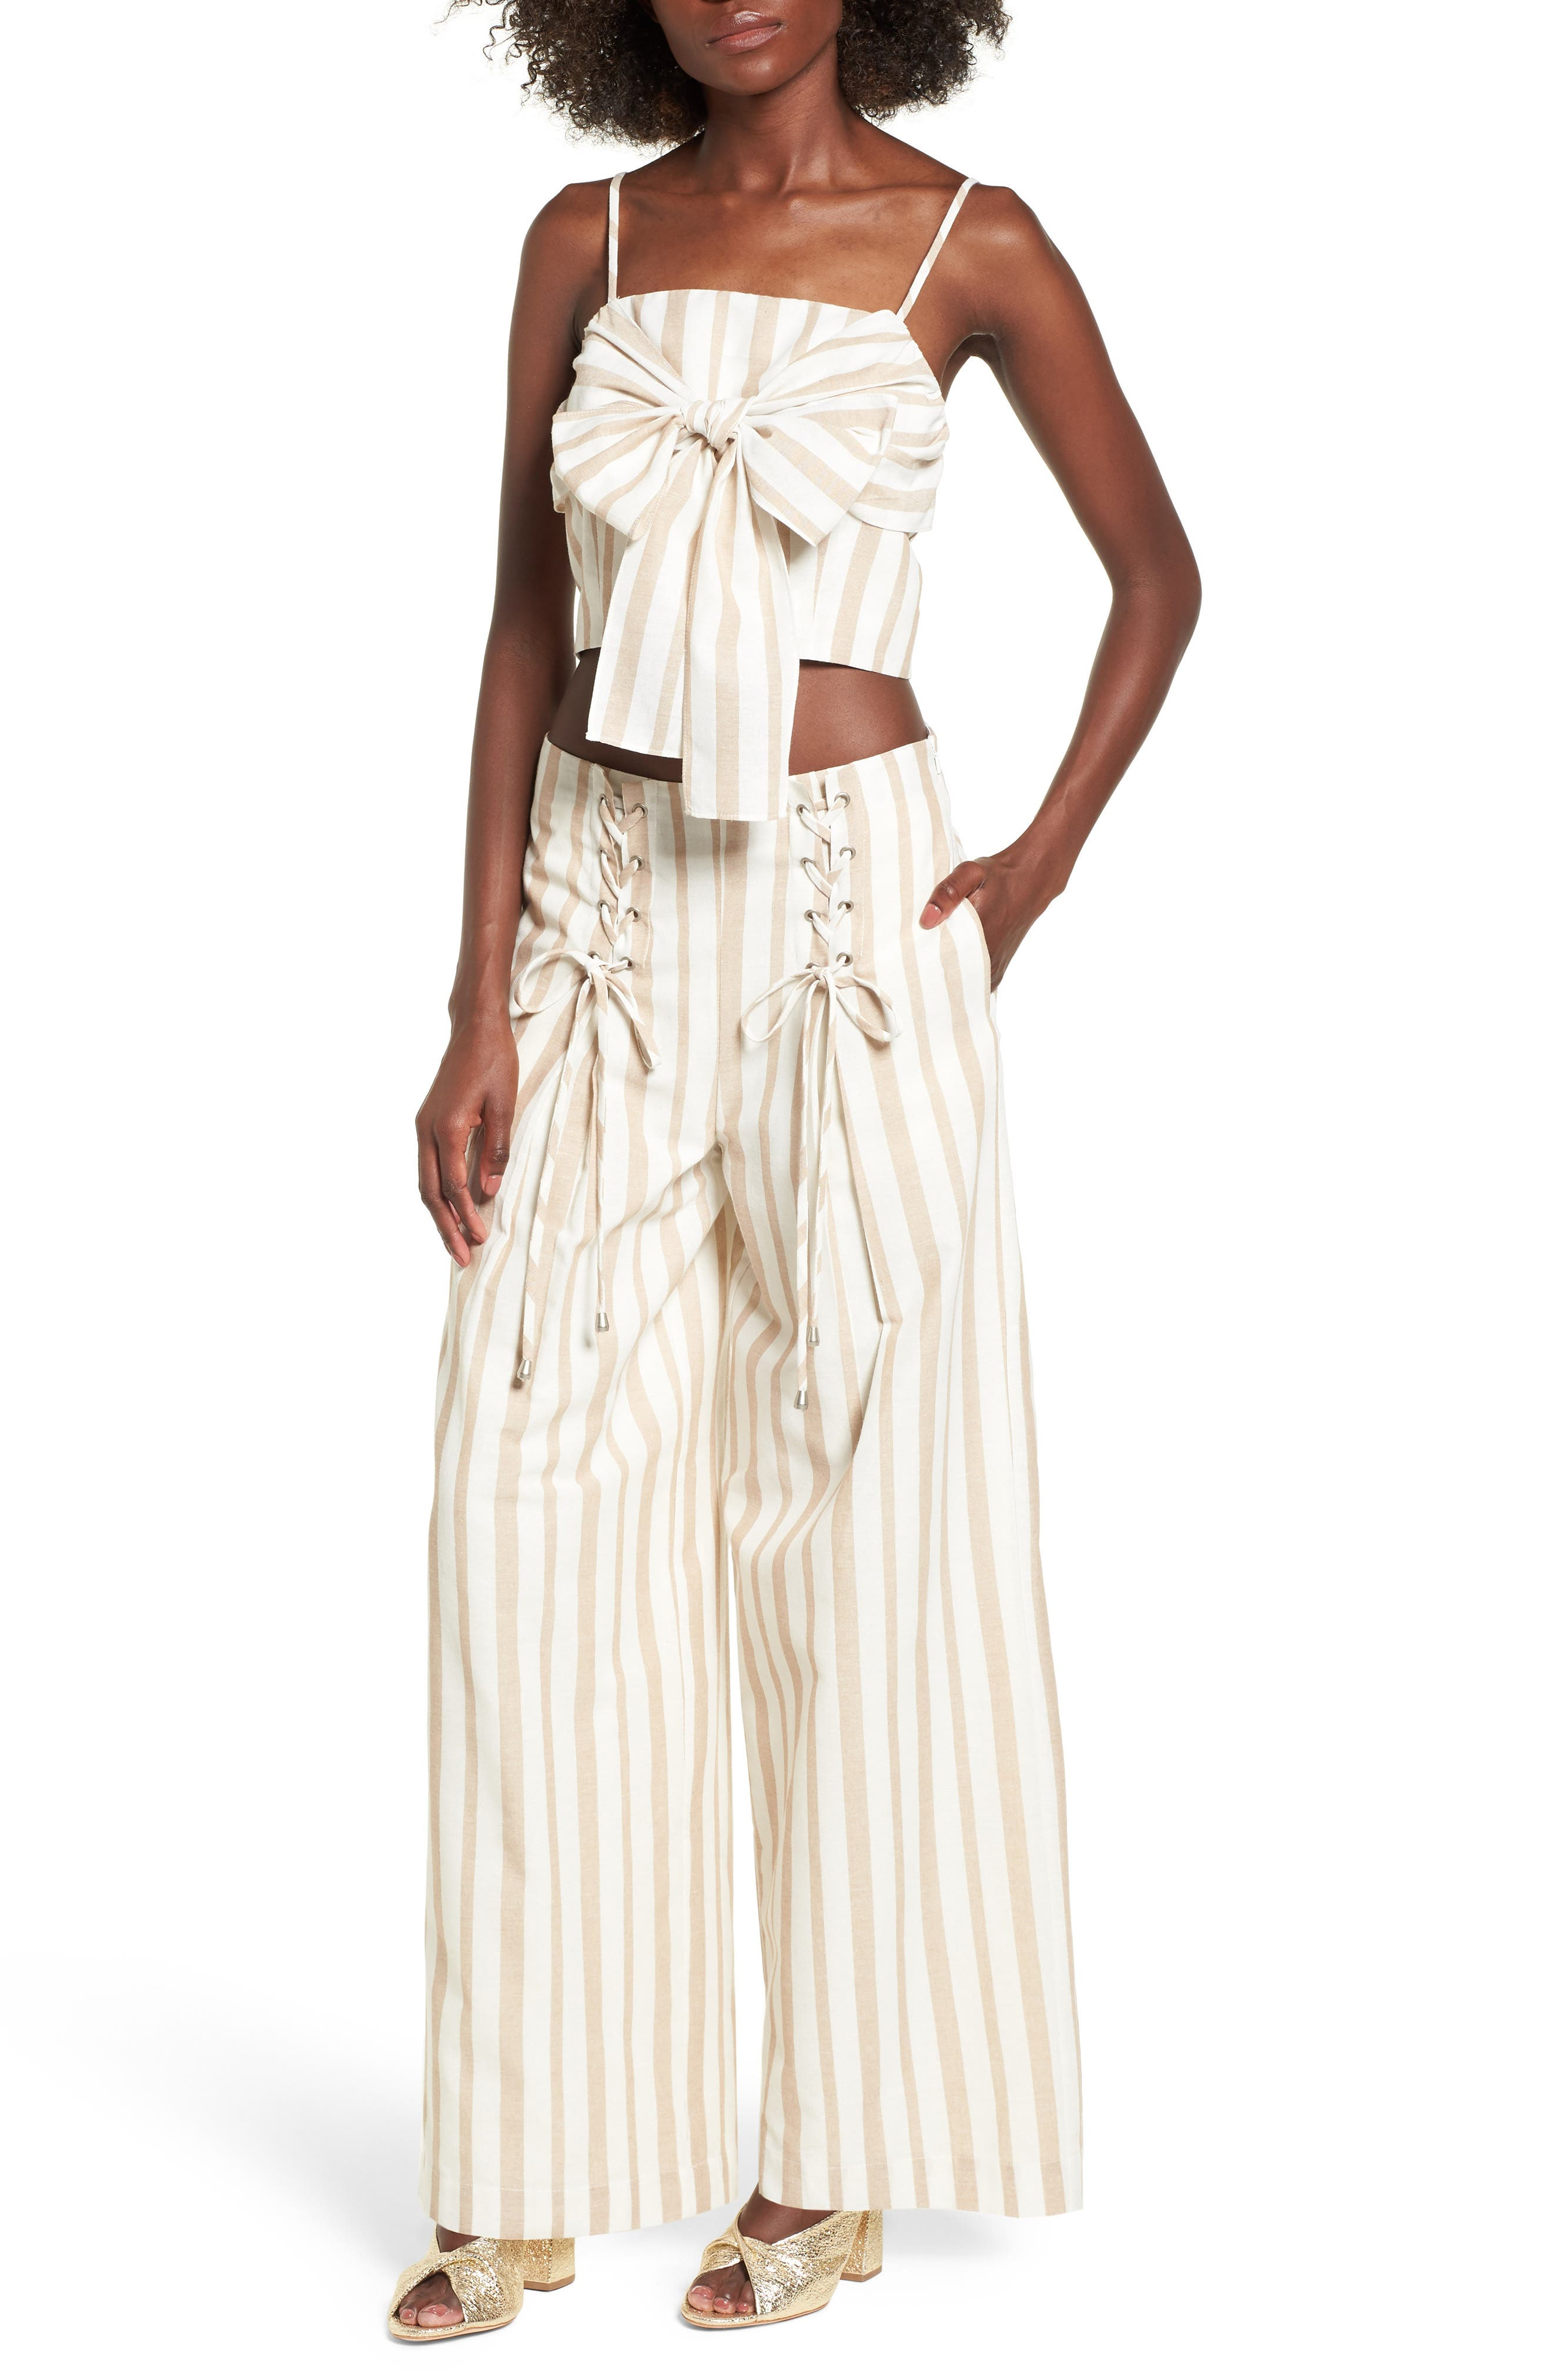 Chriselle x J.O.A. Lace-Up High Waist Wide Leg Pants,                             Alternate thumbnail 6, color,                             Sand Stripe